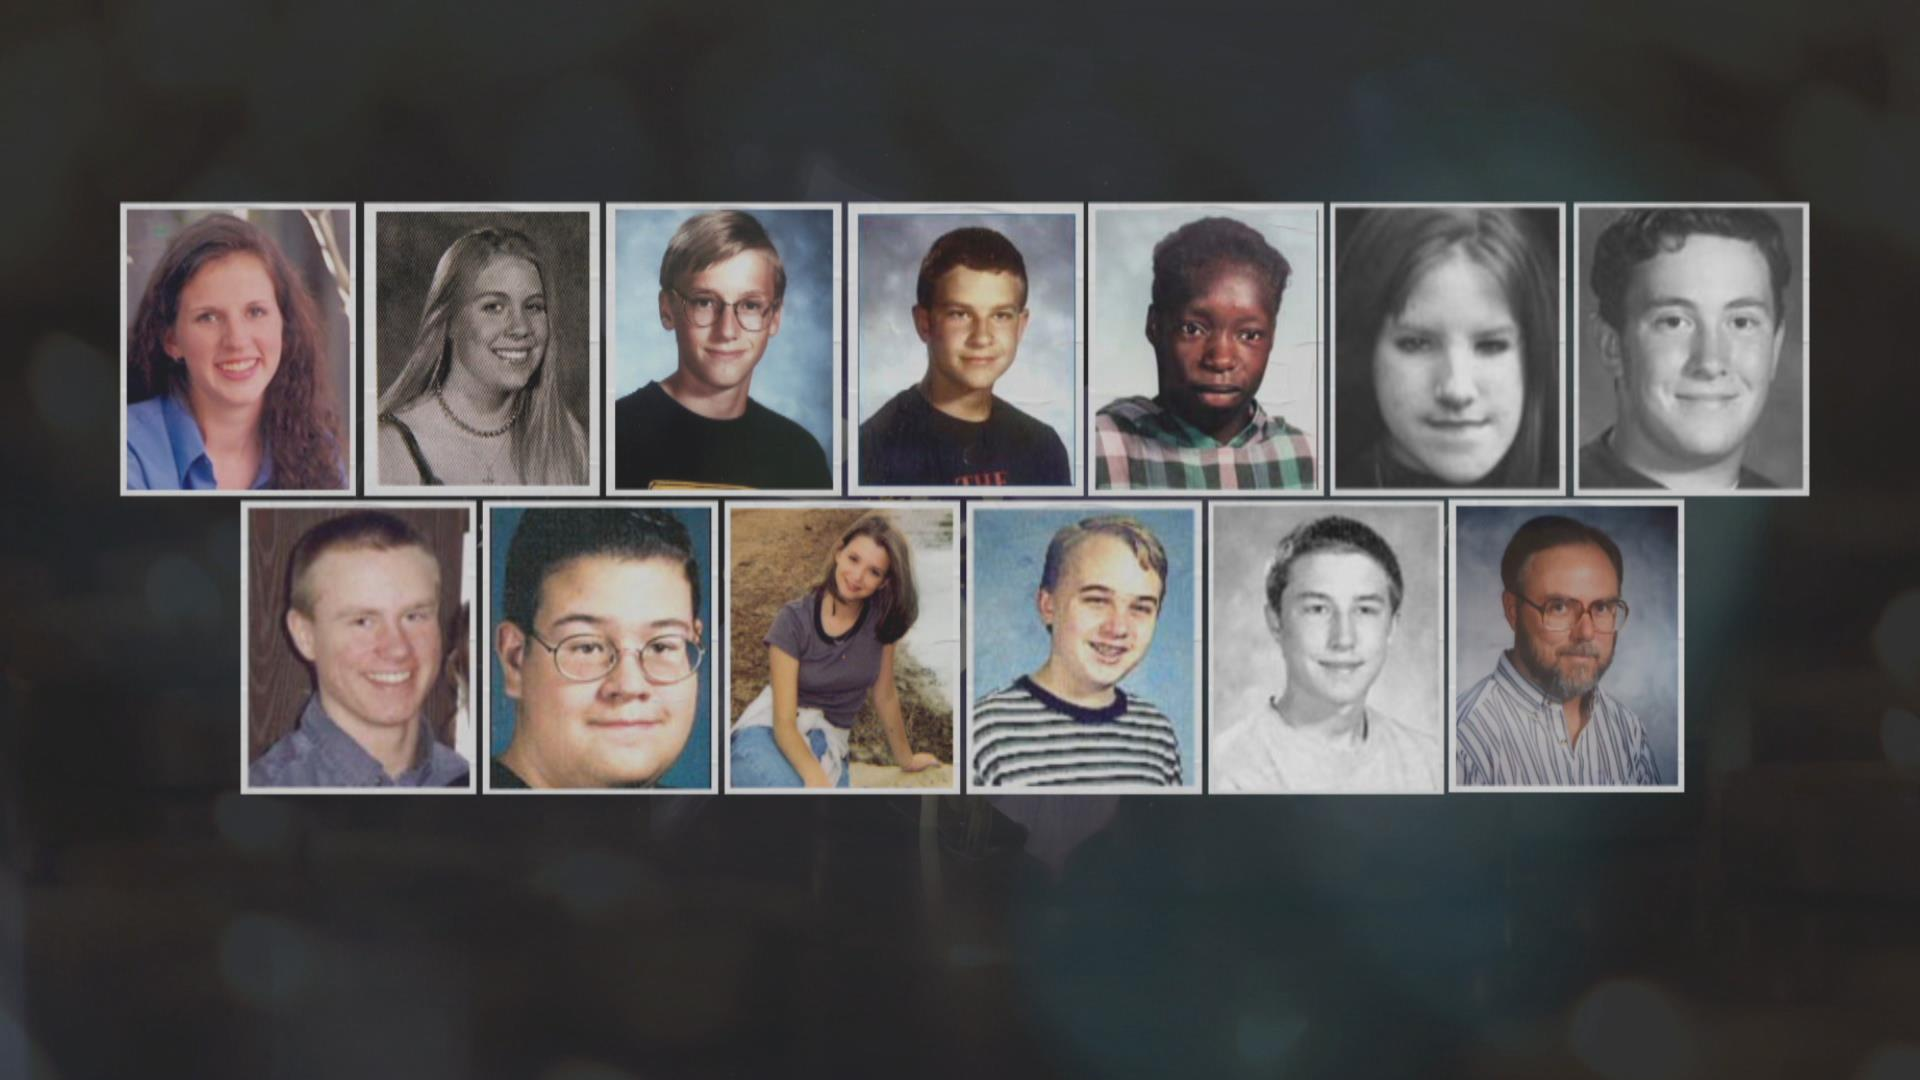 Columbine 20 years later: Families talk life after tragedy (Part 2)